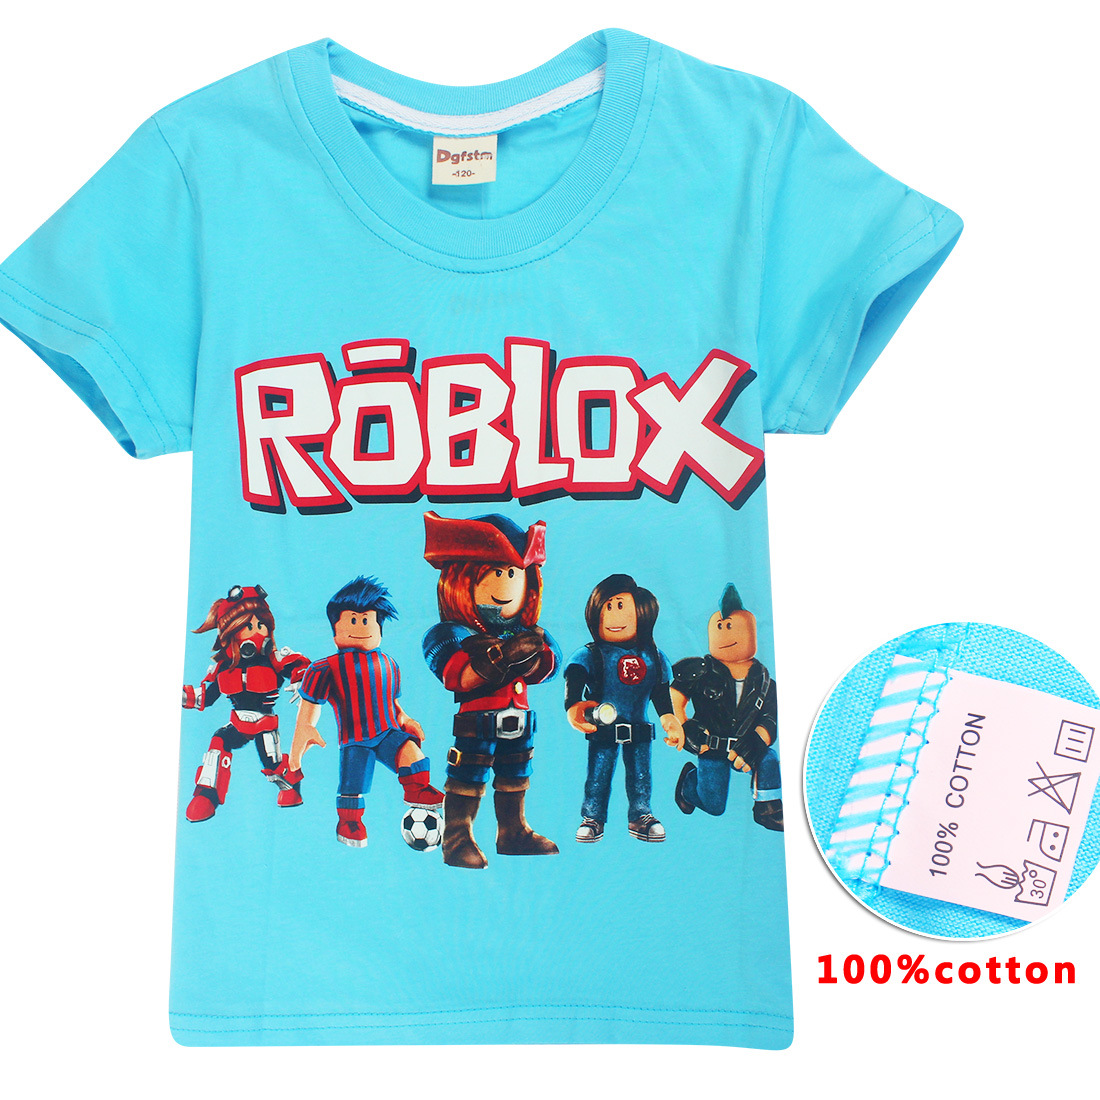 How To Get Free Shirts Roblox 2017 Rldm